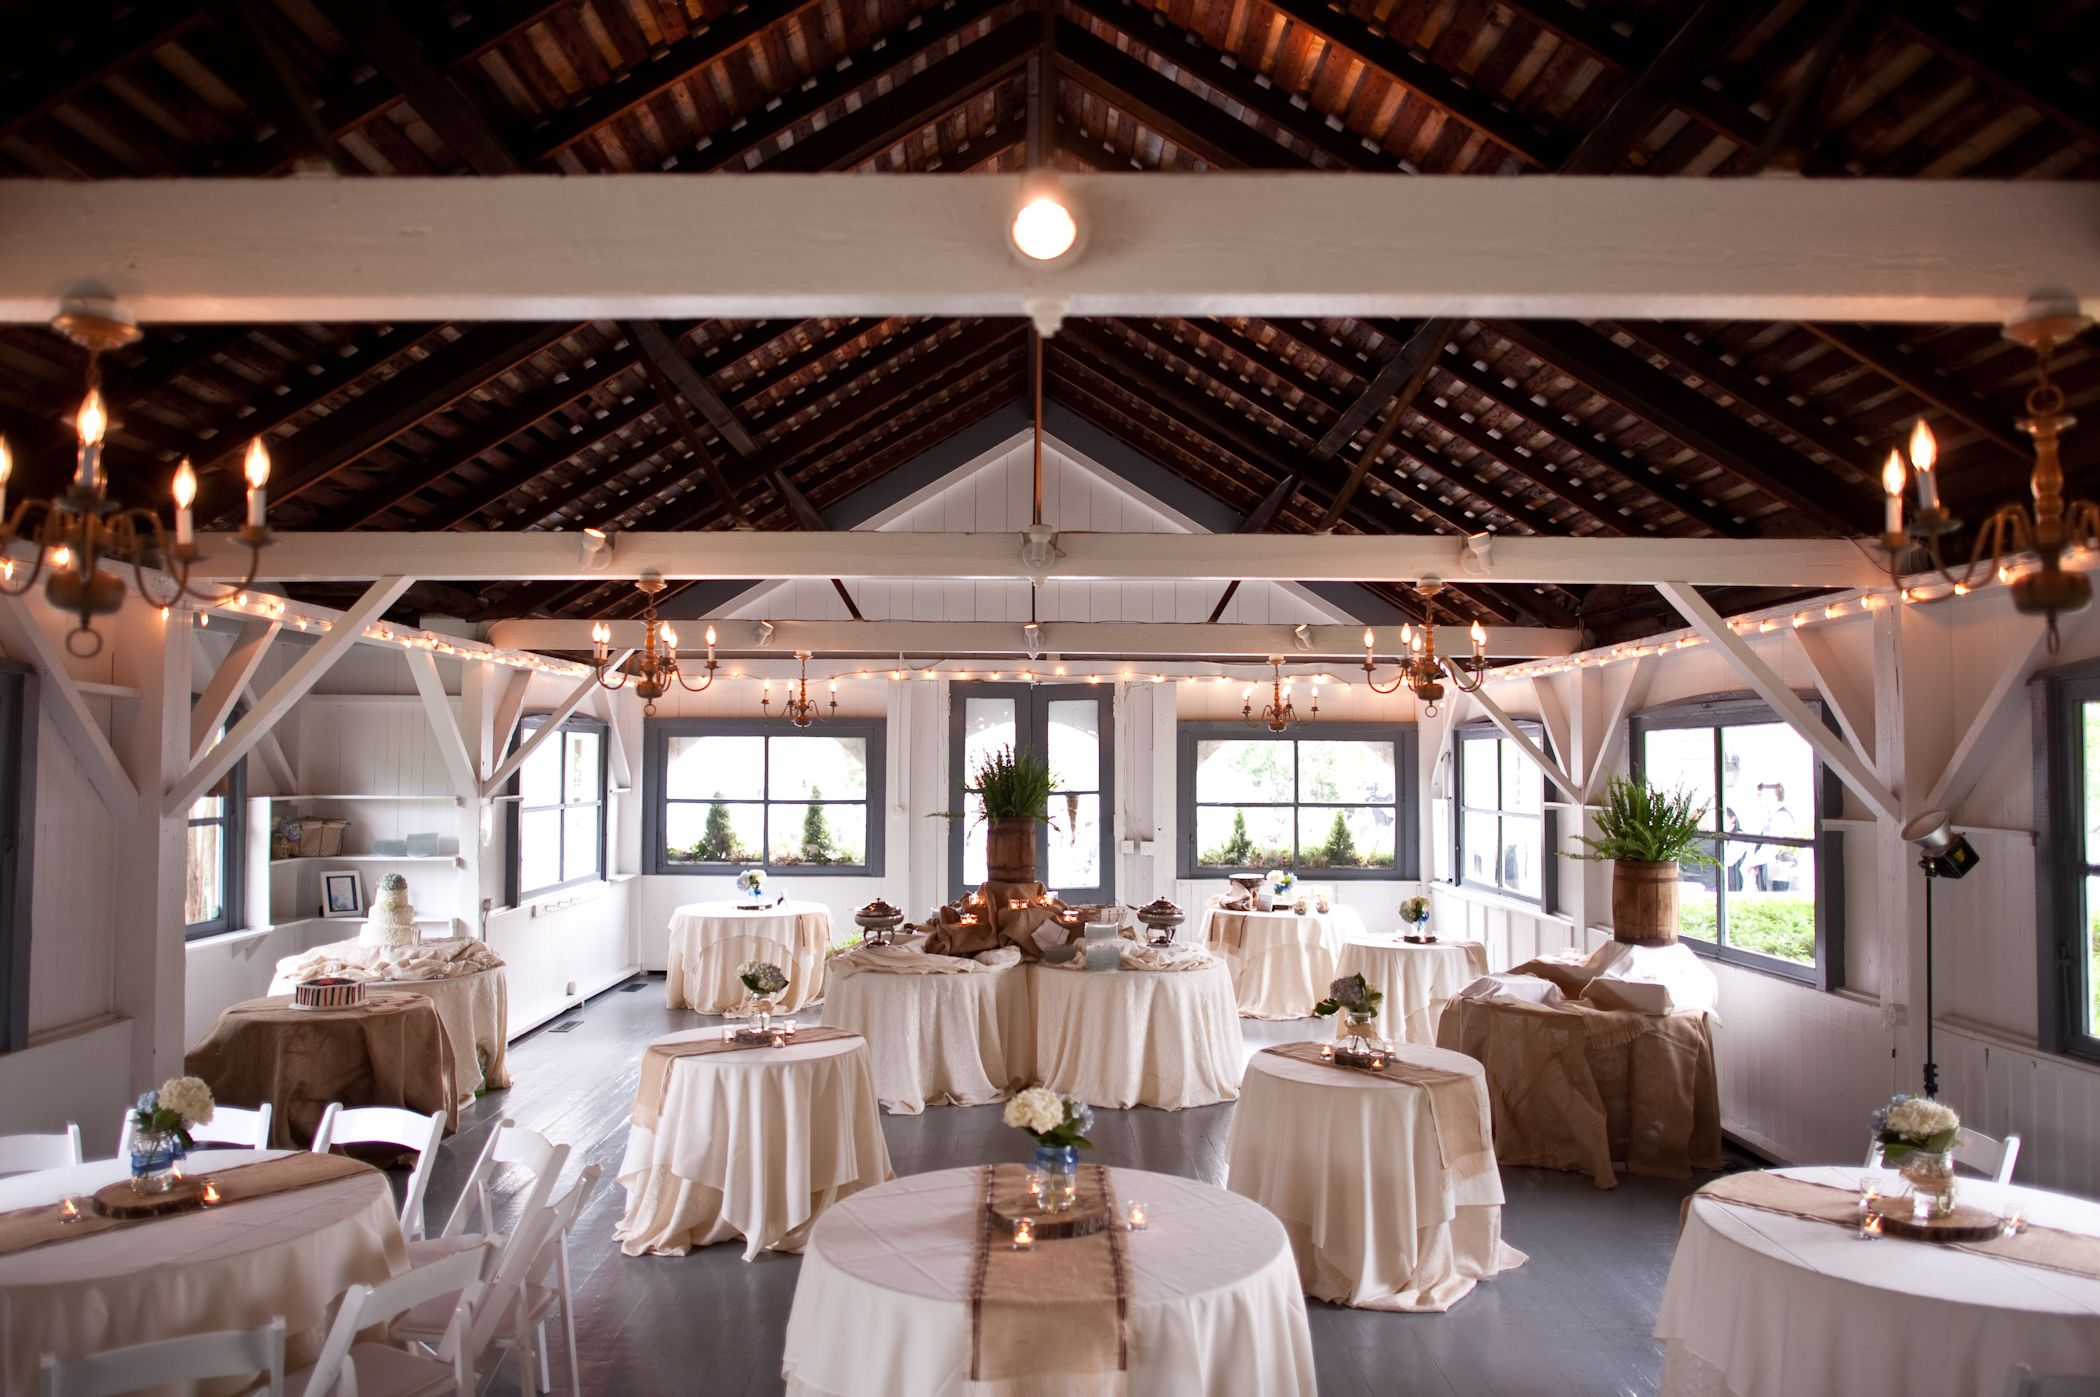 The historic pace house in vinings georgia atlanta wedding venue the historic pace house in vinings georgia atlanta wedding venue historic junglespirit Gallery